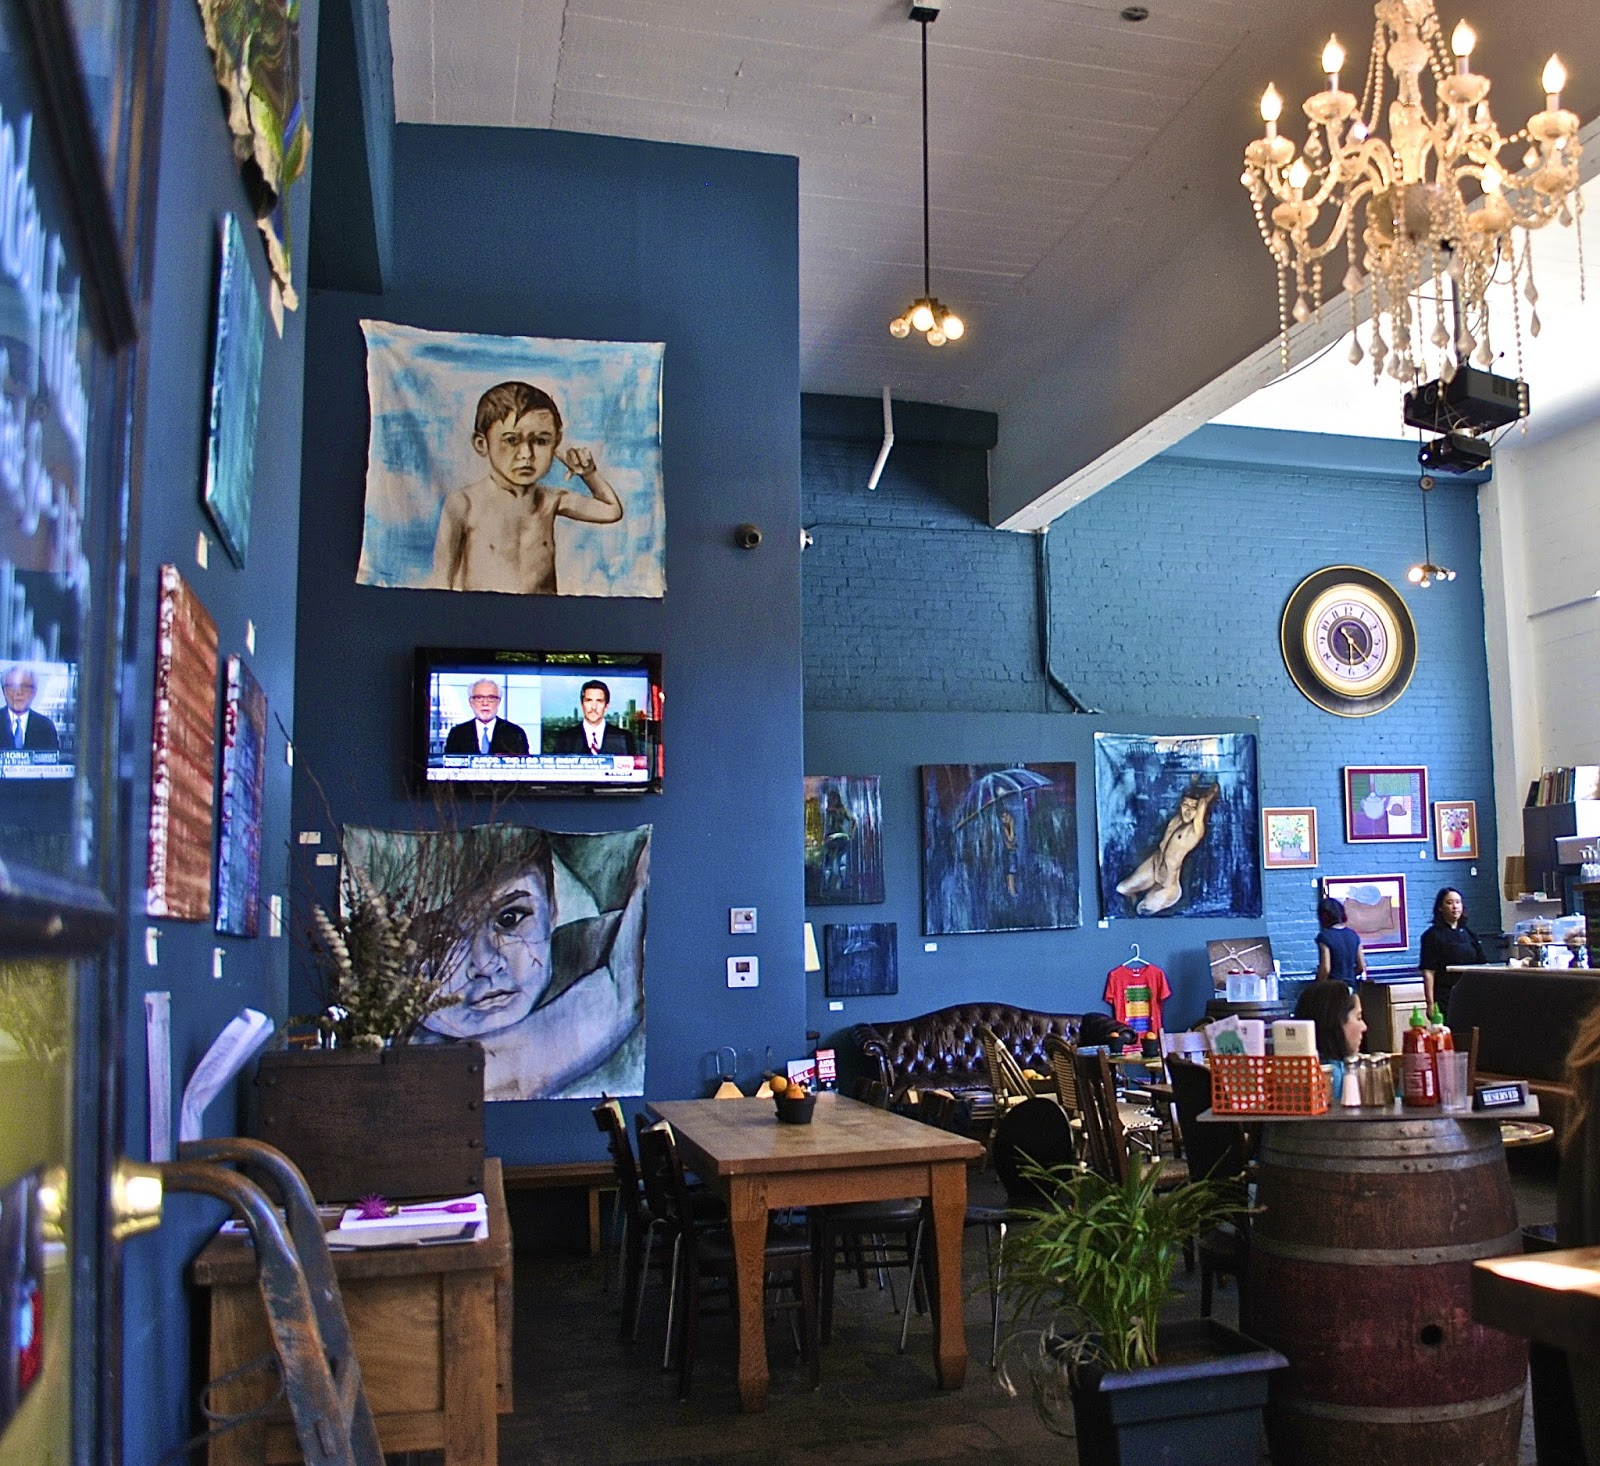 Art Places In San Francisco: Places I've Eaten: 144 KING ART CAFE...ODD ART BUT GOOD FOOD